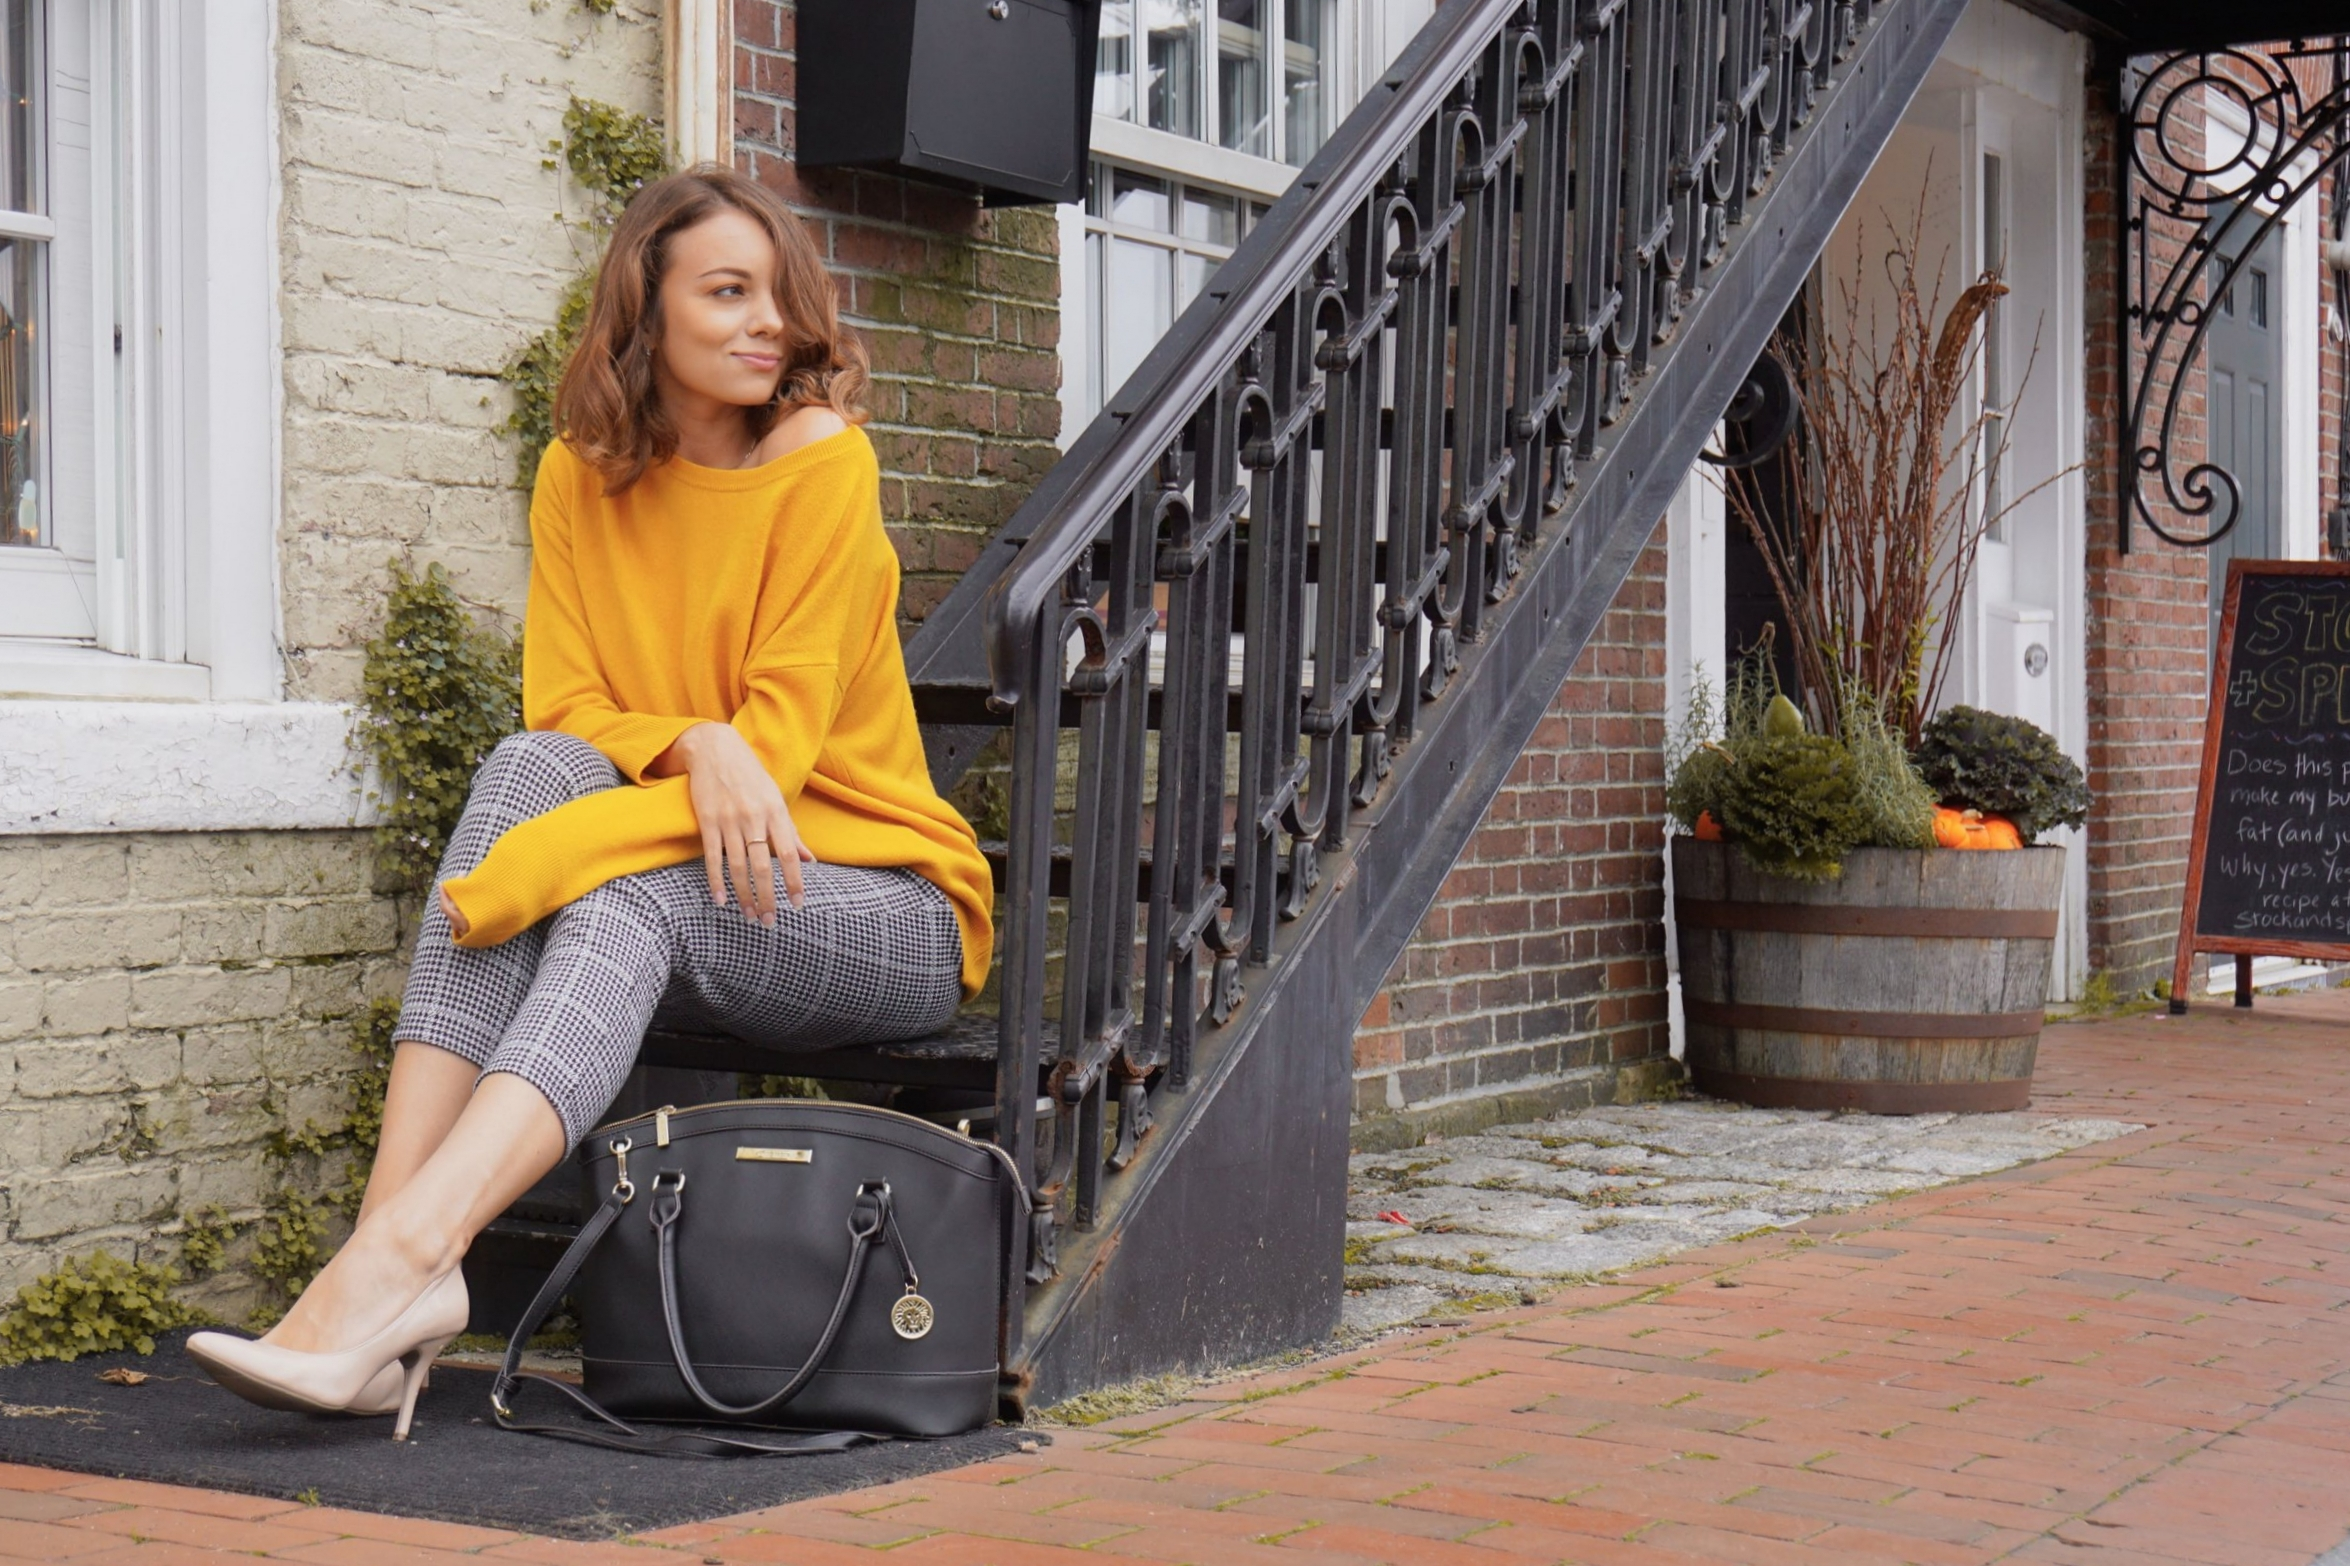 A blogger sitting on stairs near a brick buildin wearing mustrd sweater, houndstooth pants, nude pumps, and black bag.